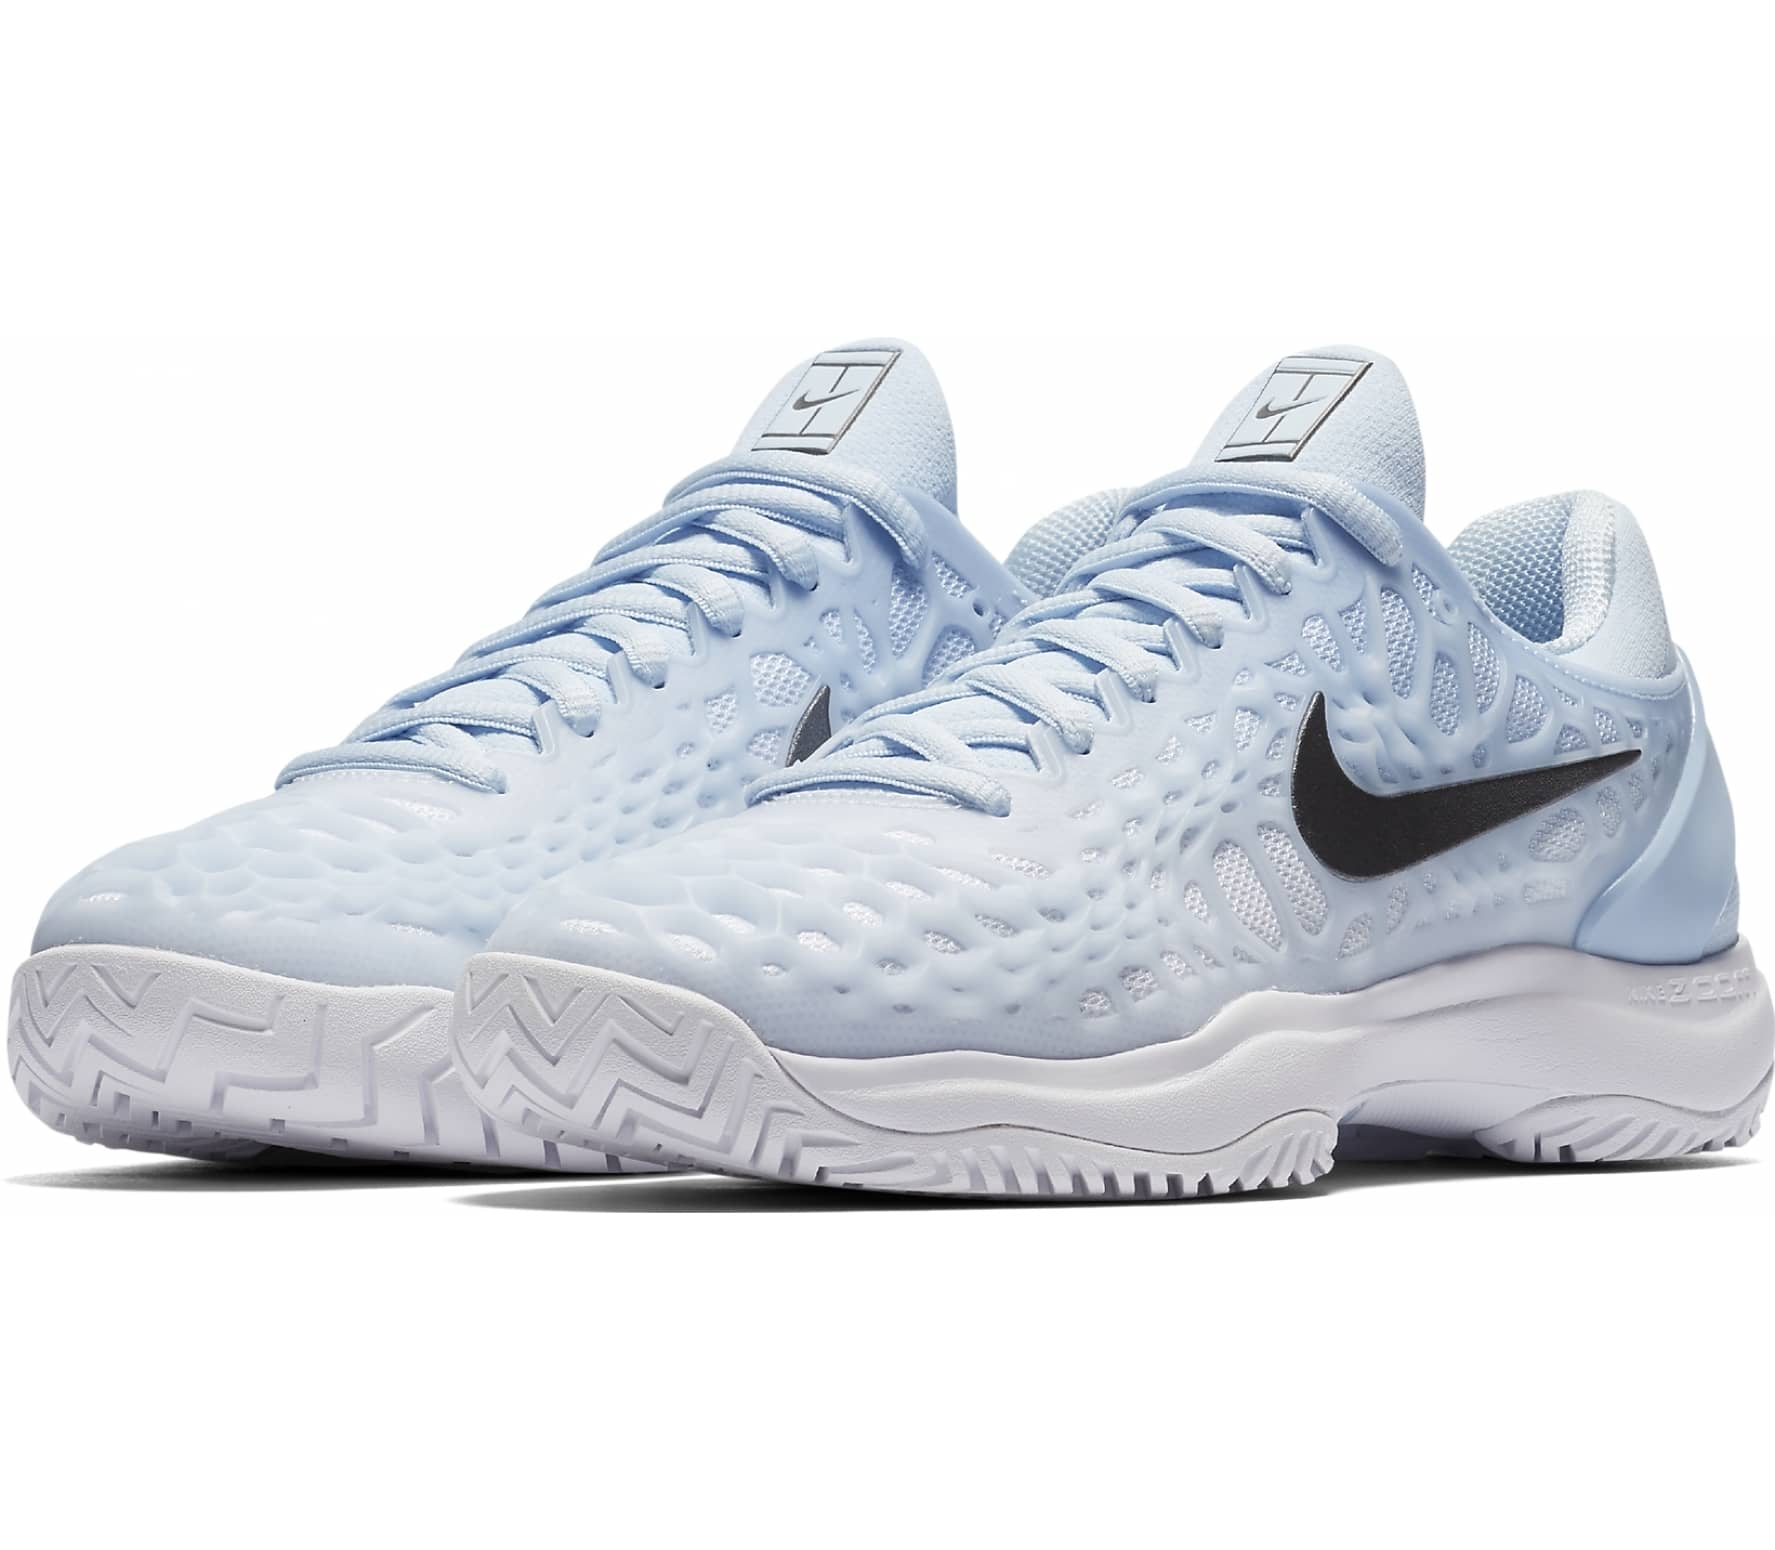 274148d47206 Nike Zoom Cage 3 Women - buy it at the Keller Sports online shop